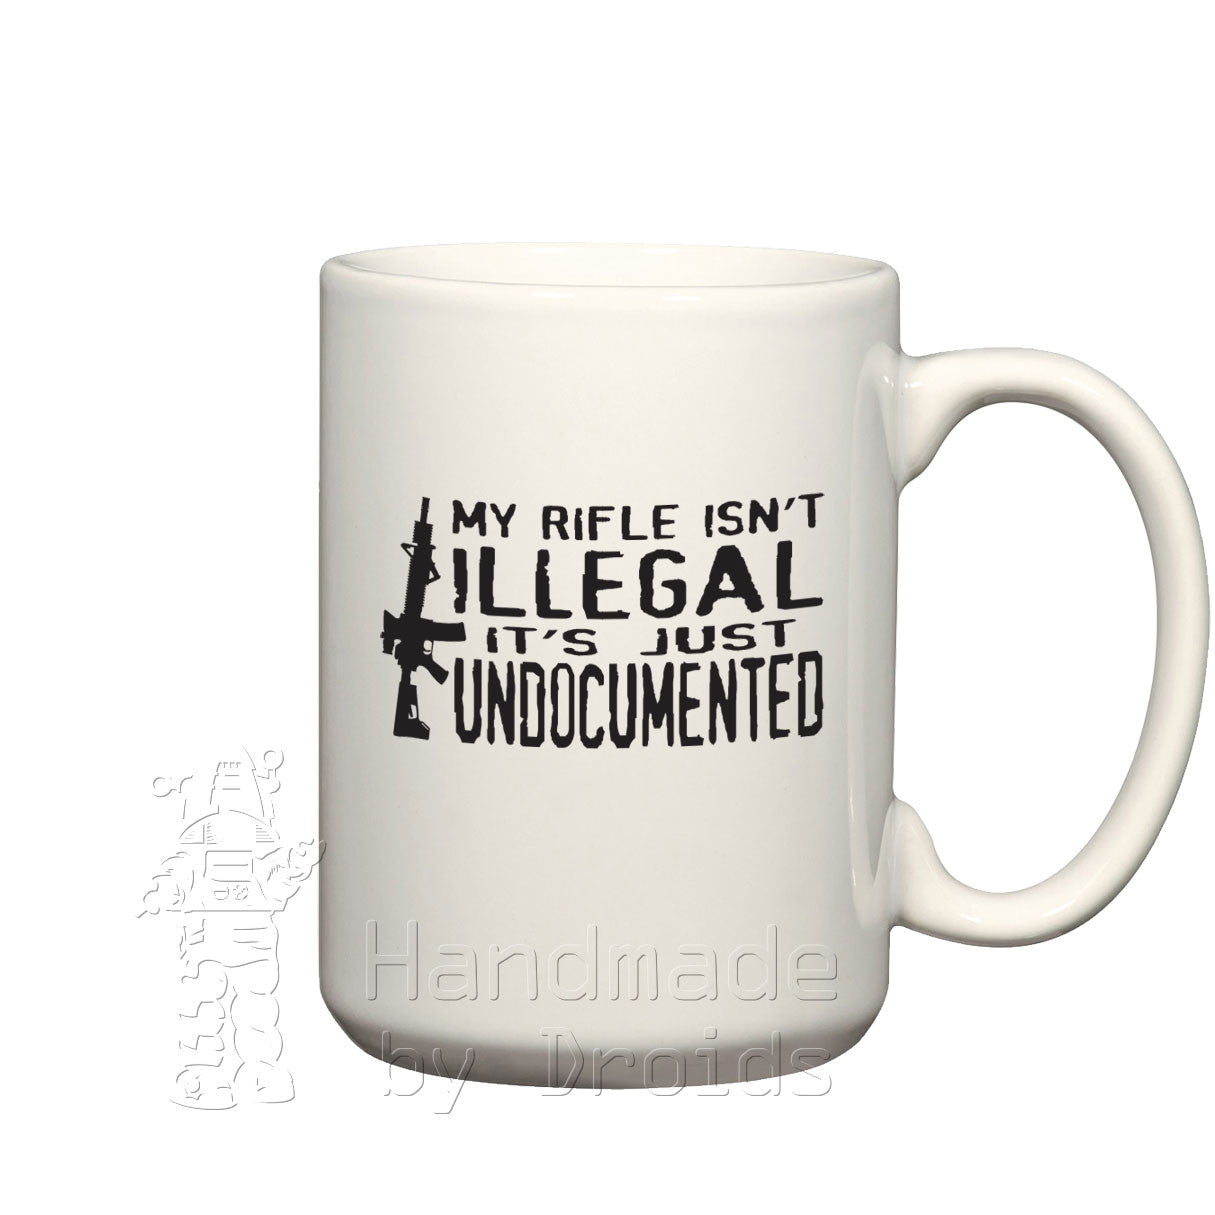 Undocumented Rifle (15oz) Mug